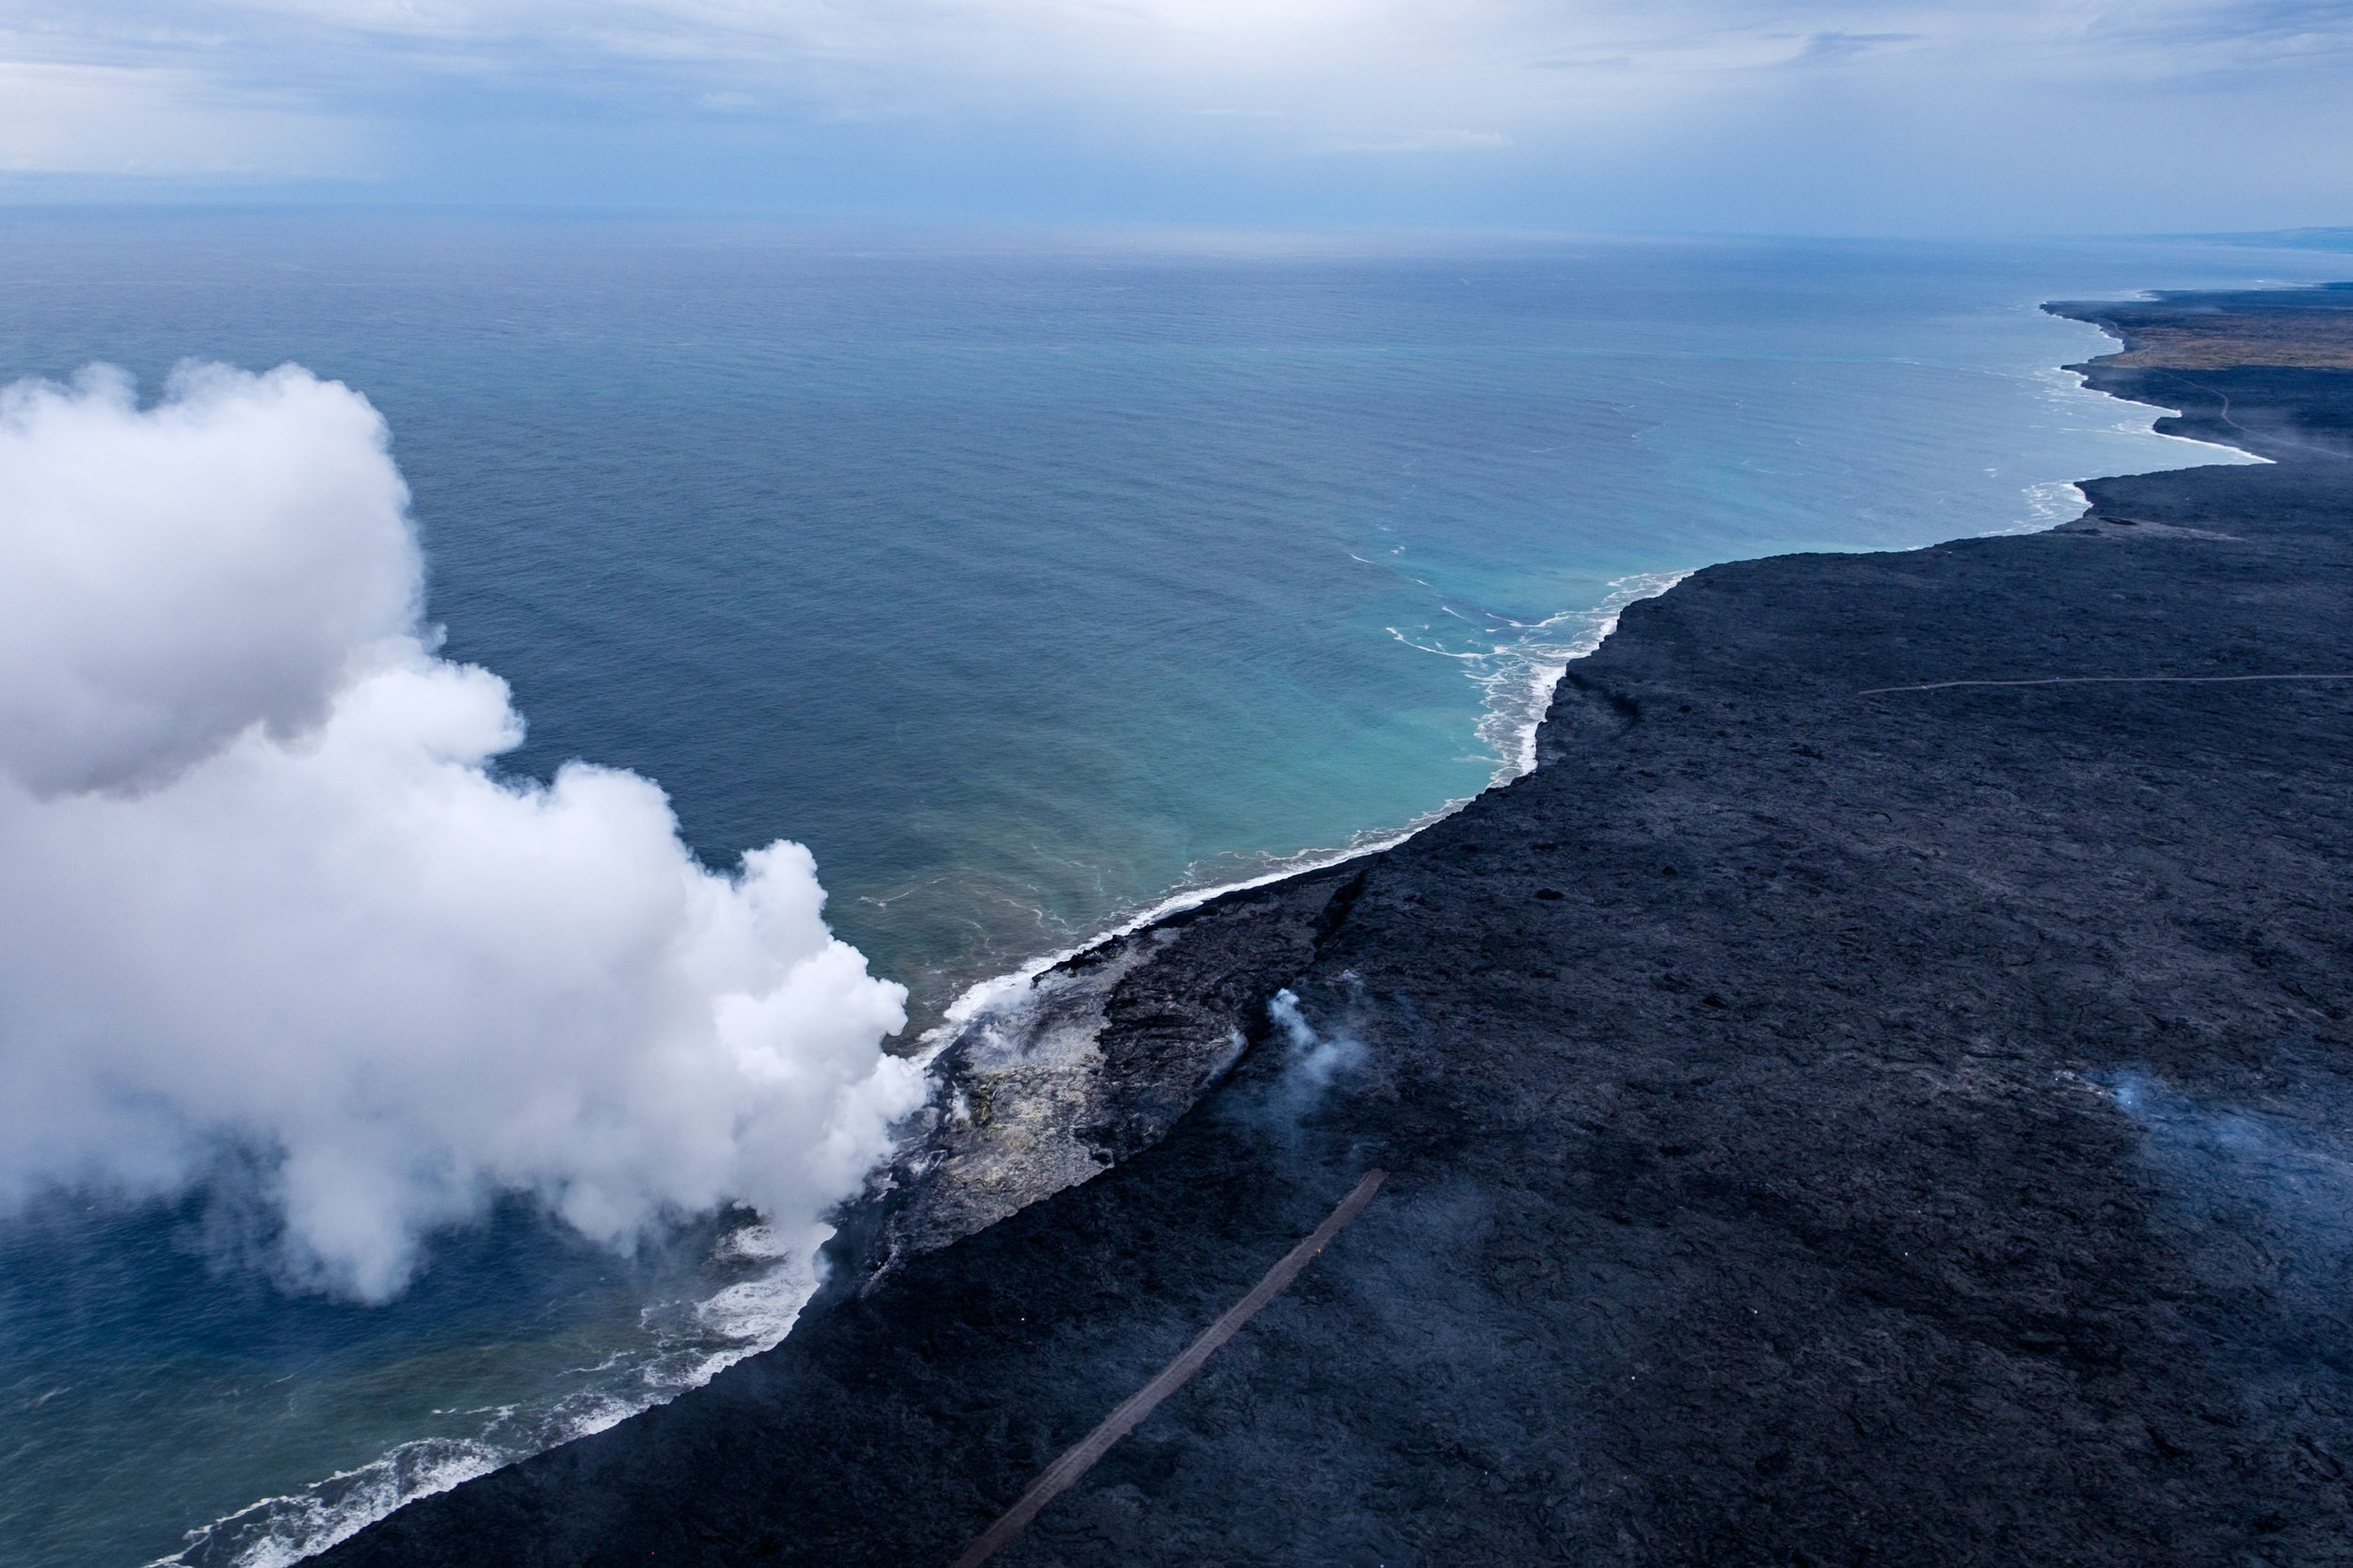 And we finally reach where the lava is flowing freely into the sea. Amazing!